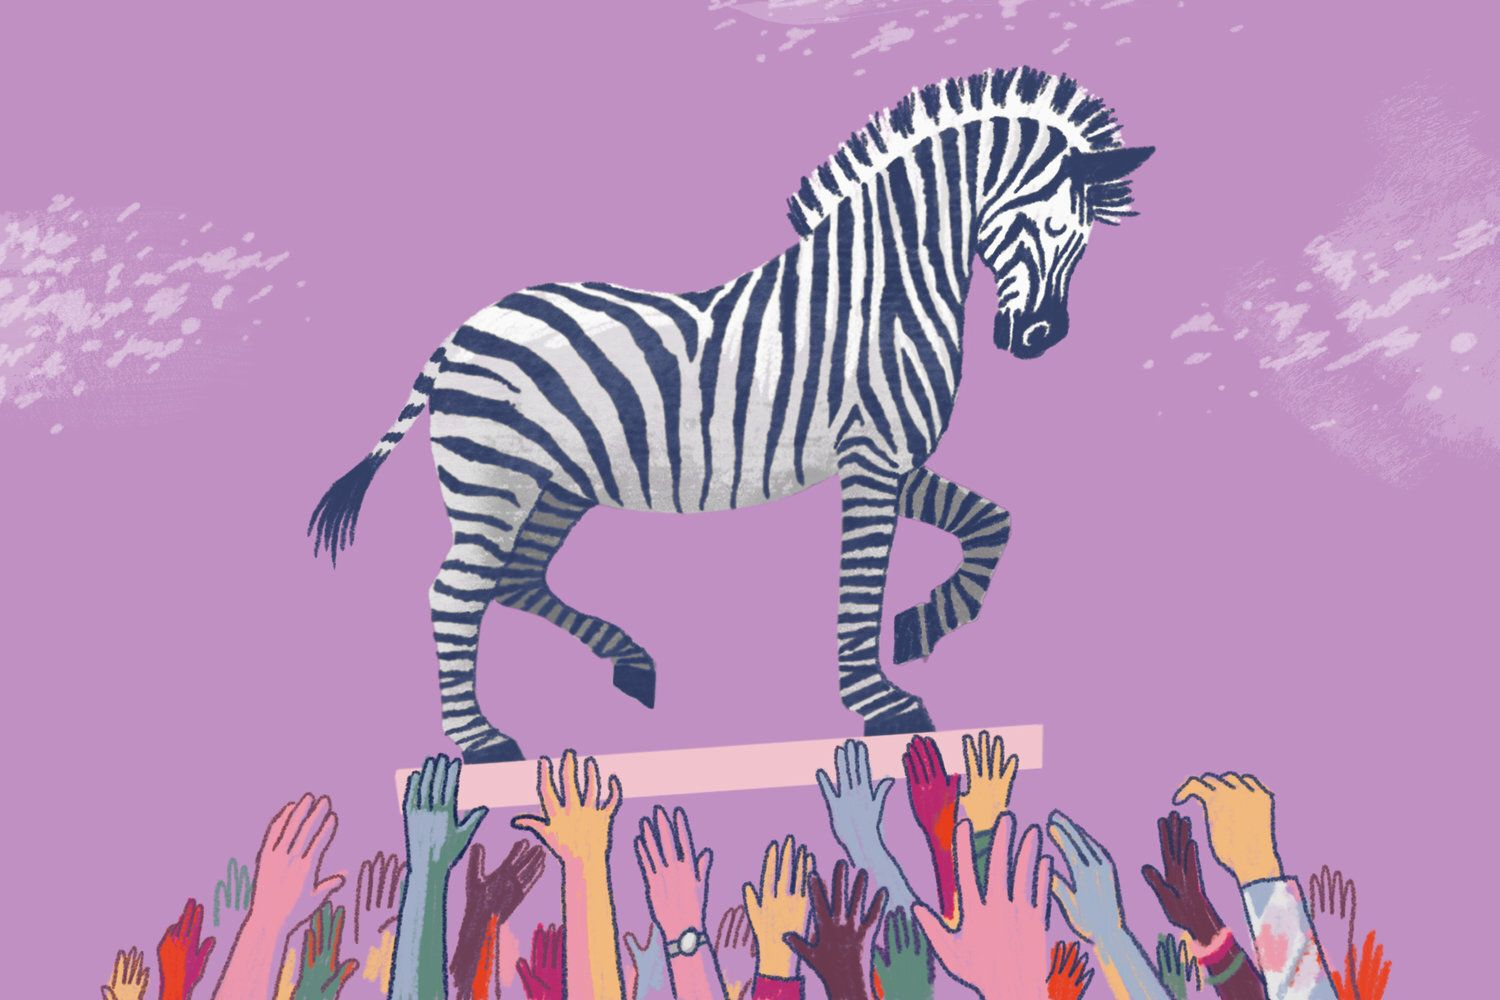 an illustration of a zebra standing on a platform which is supported by a crowd of multicolored arms reaching upwards